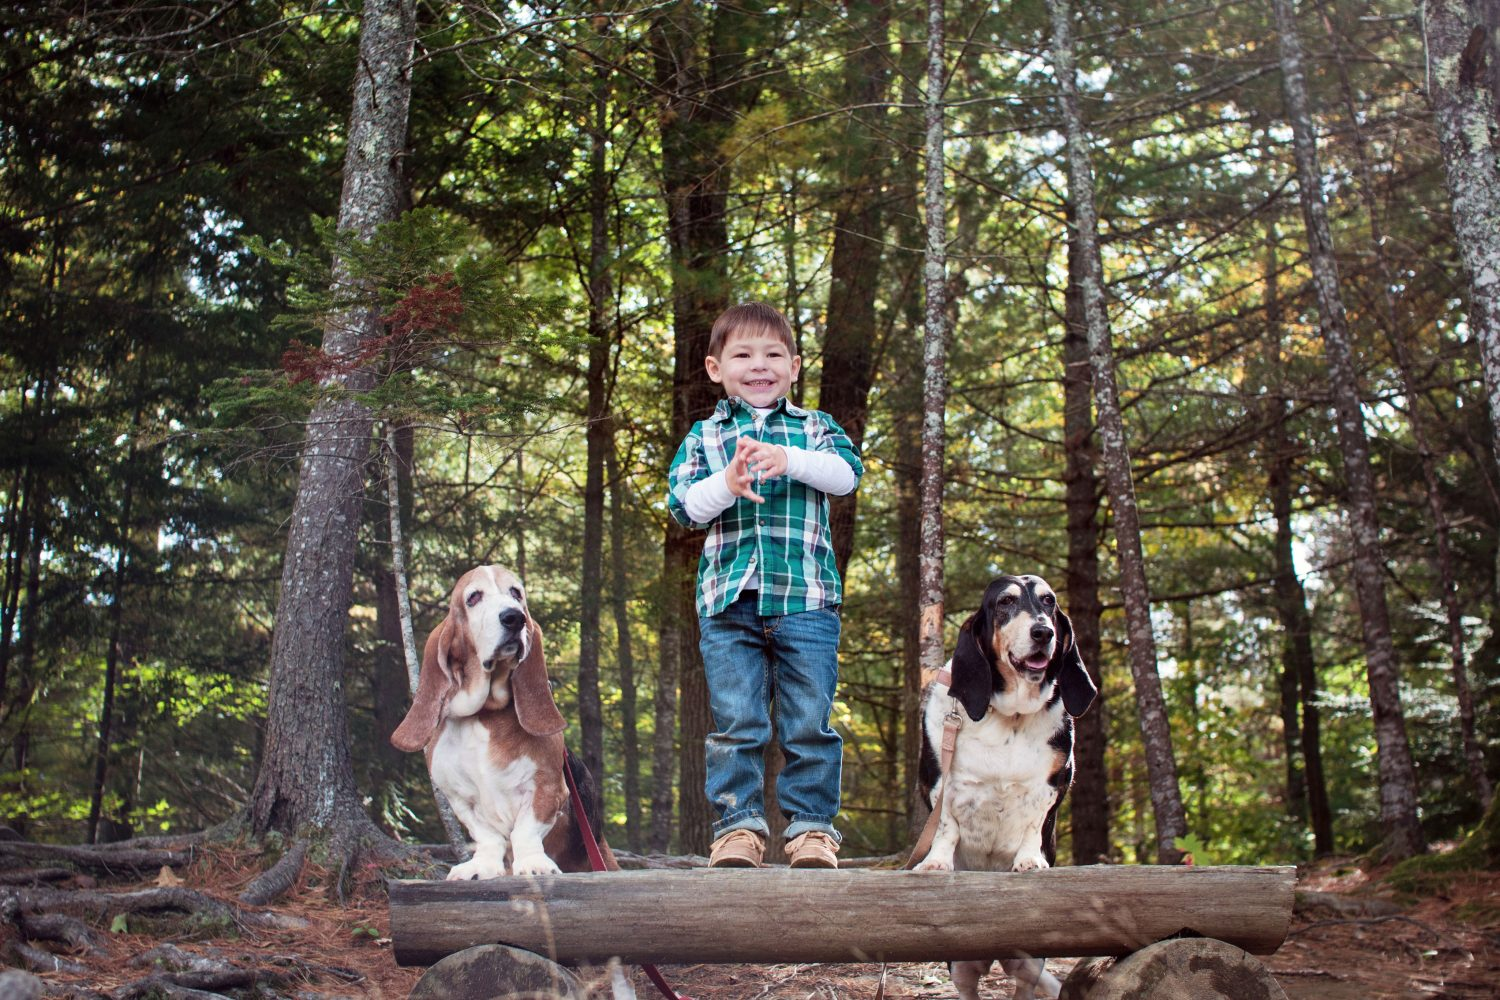 little boy standing on log with basset hounds on each side of him